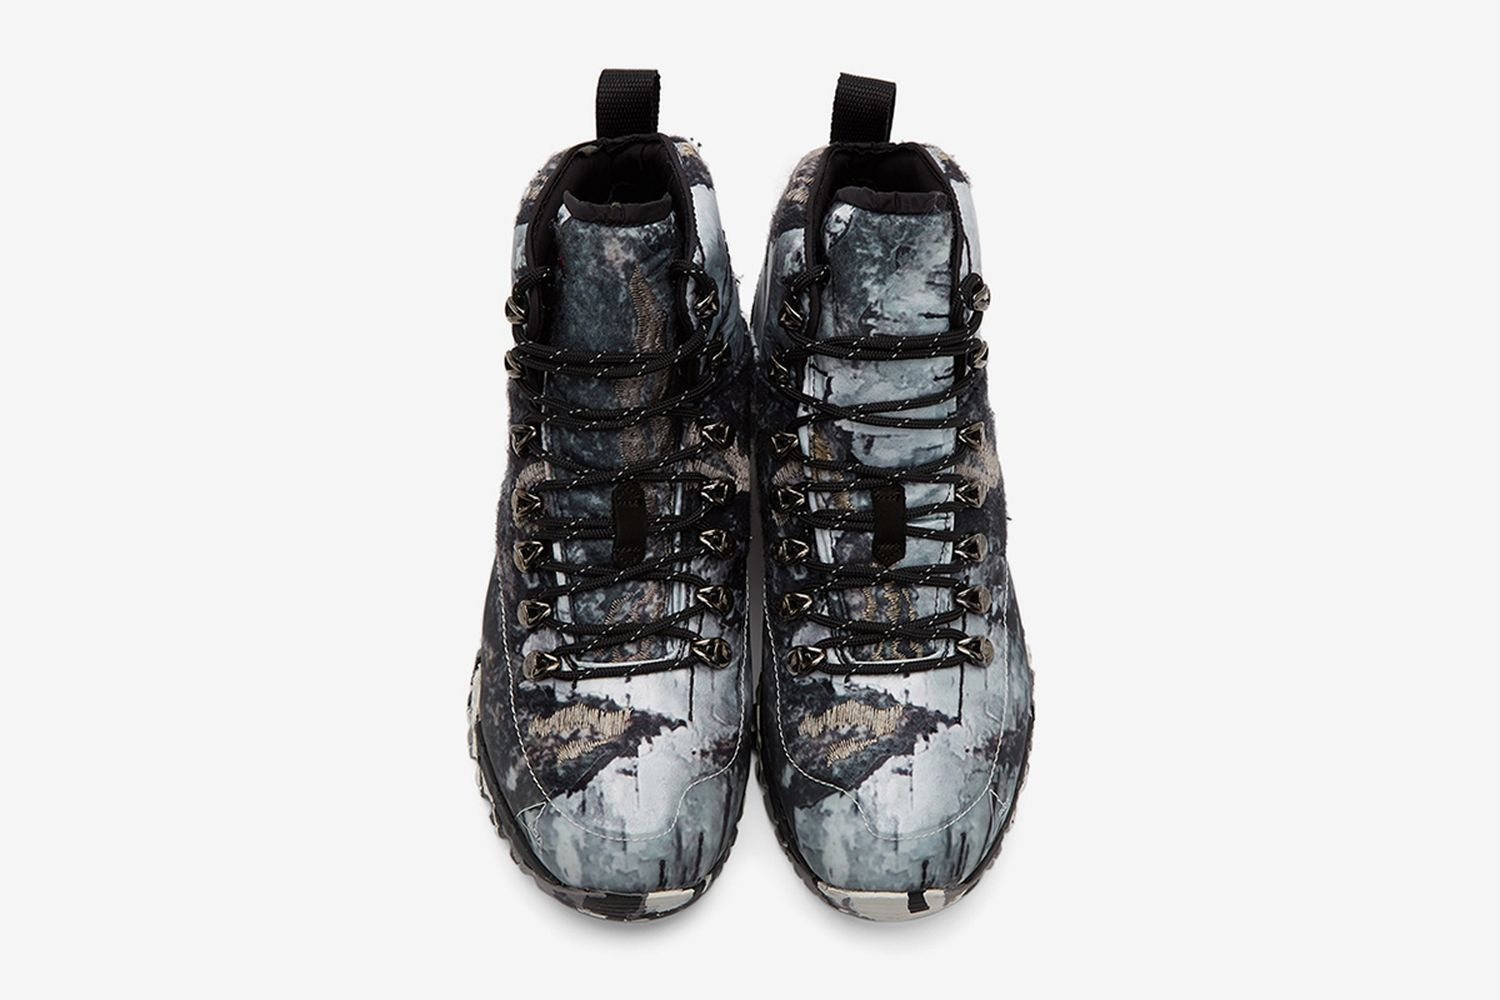 Andreas Lace-Up Boots